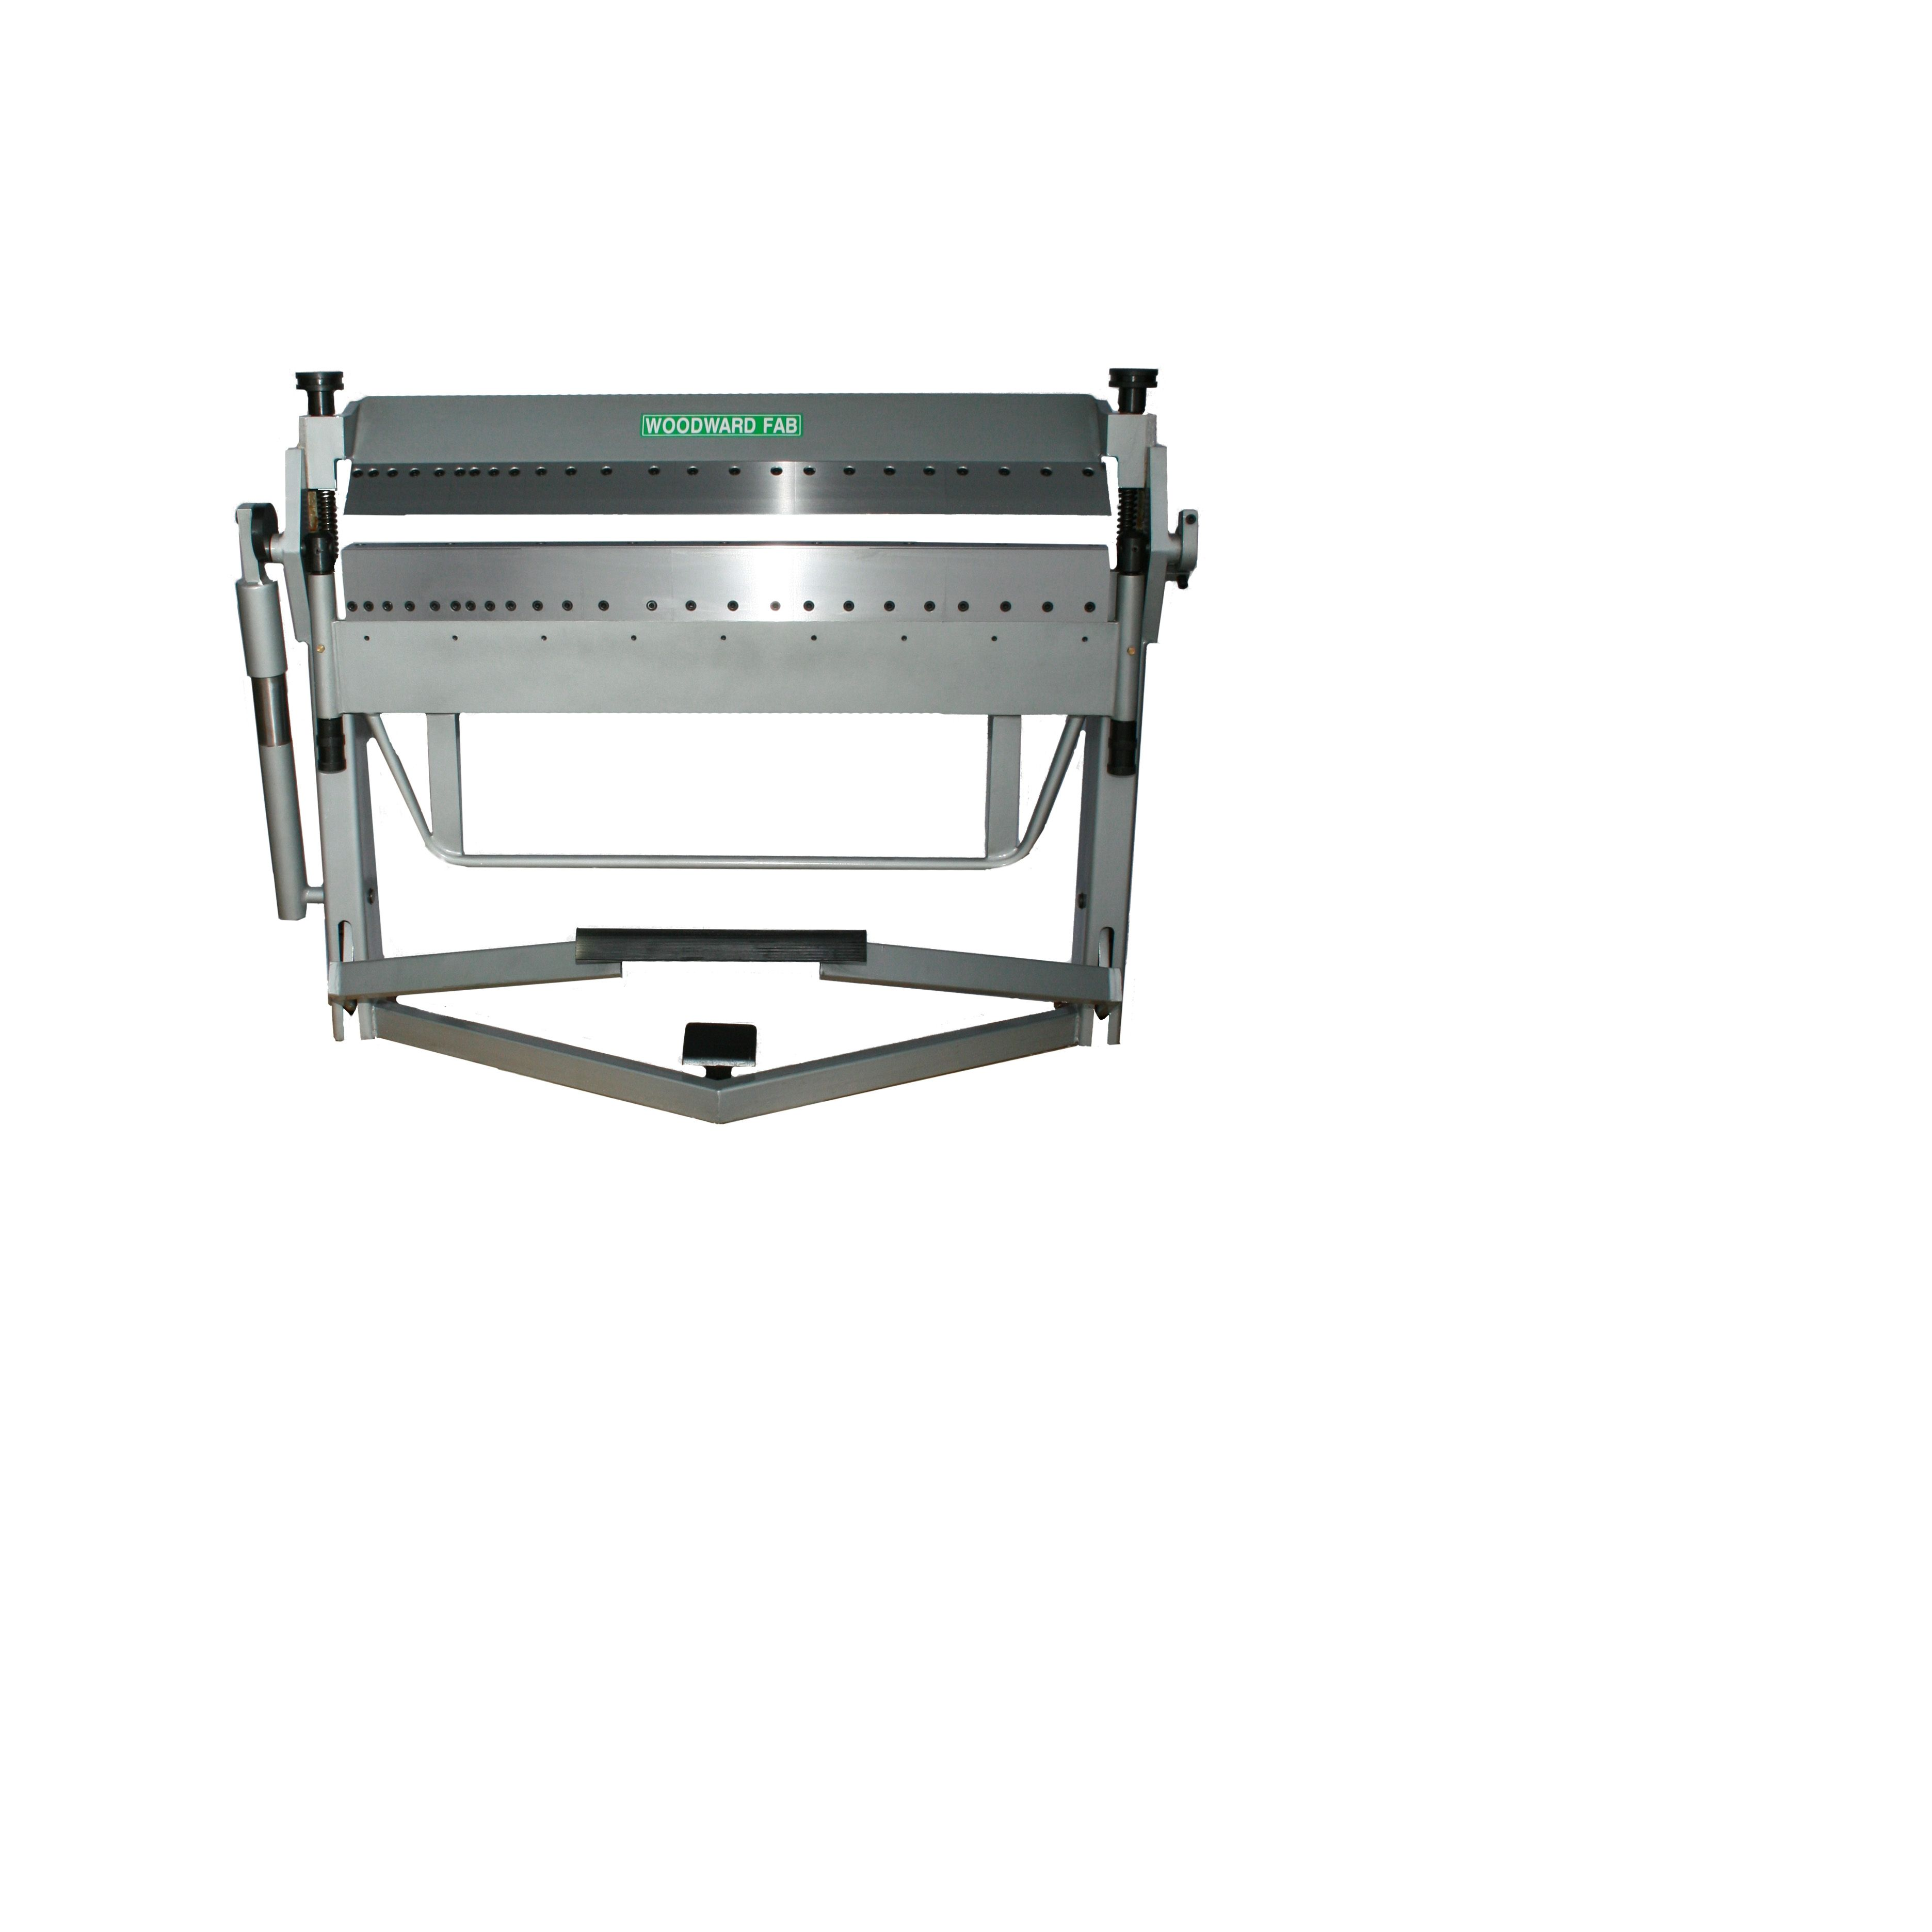 Box And Pan Bending Brakes Wfbp5014 R Metal Bending Tools Metal Bending Sheet Metal Brake